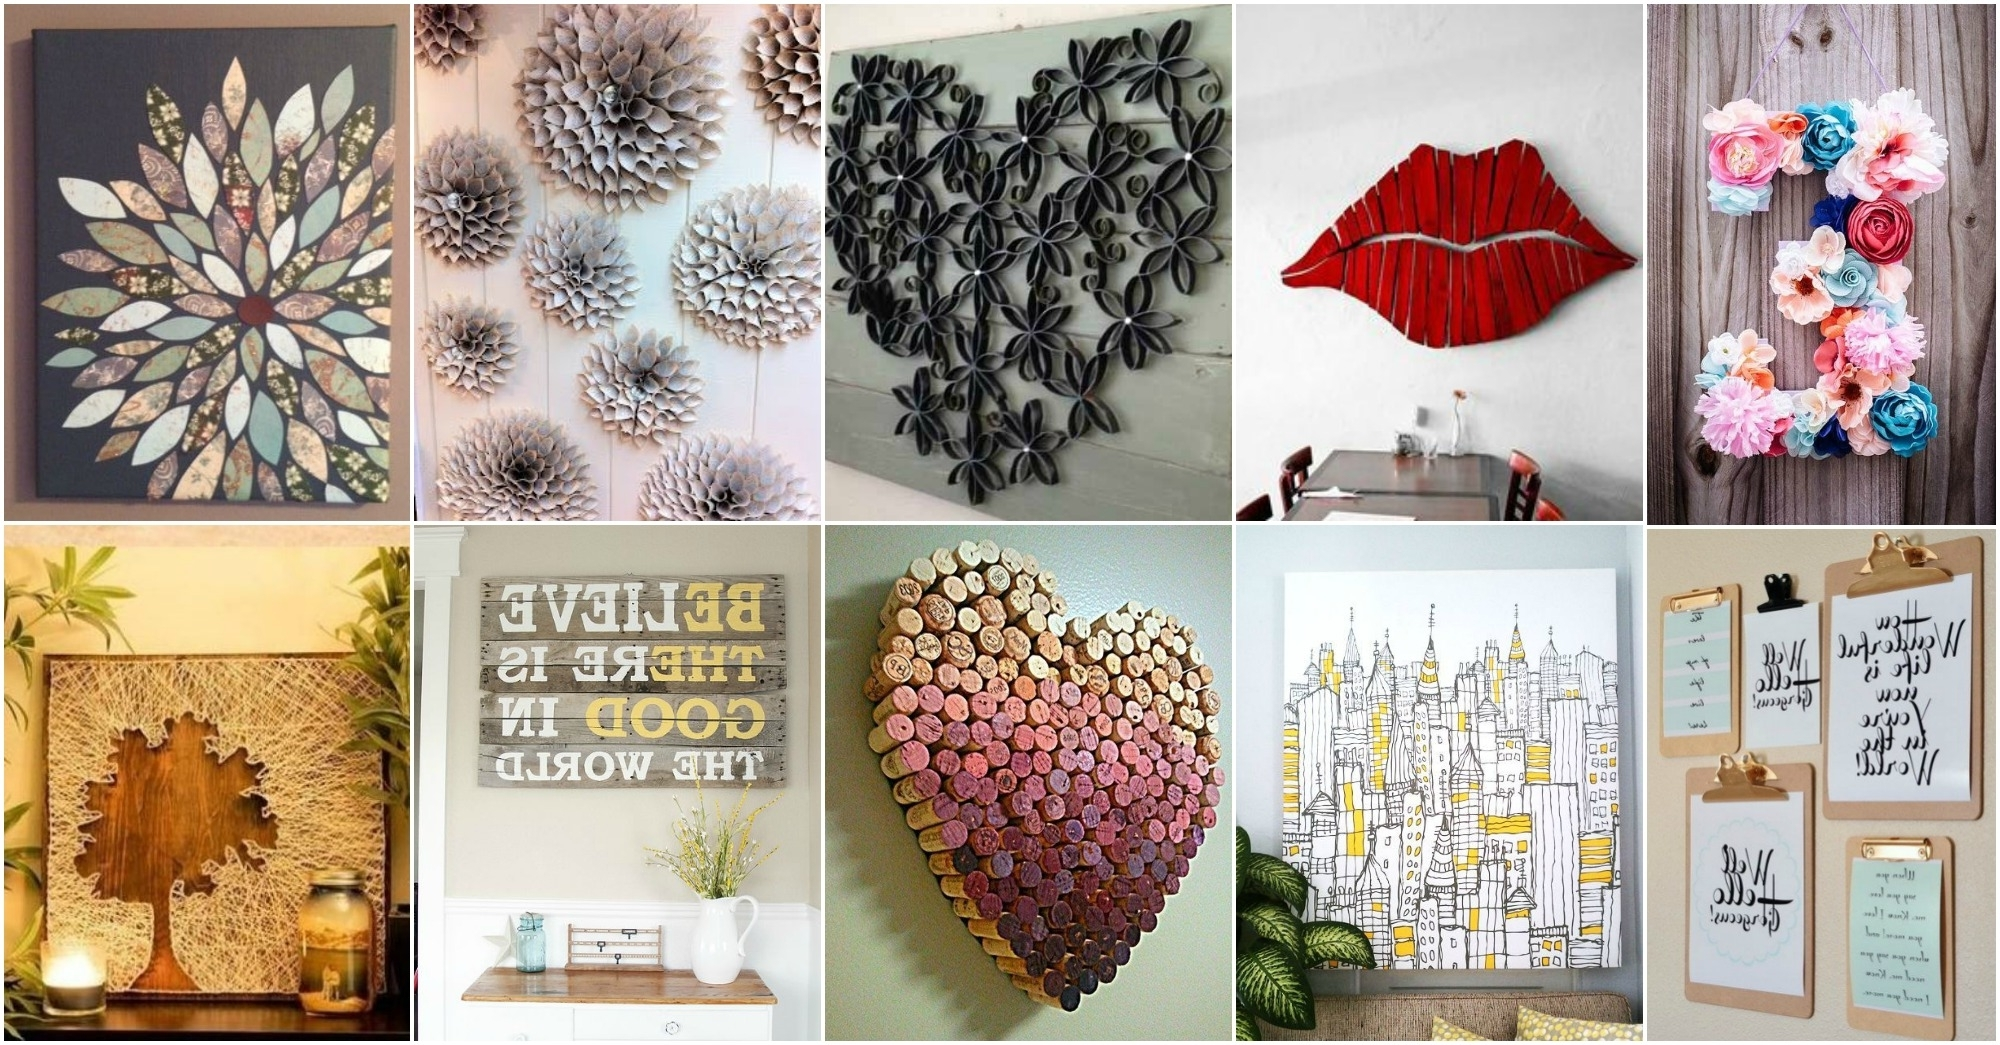 More Amazing Diy Wall Art Ideas Regarding Most Recently Released Wall Art Diy (View 7 of 15)